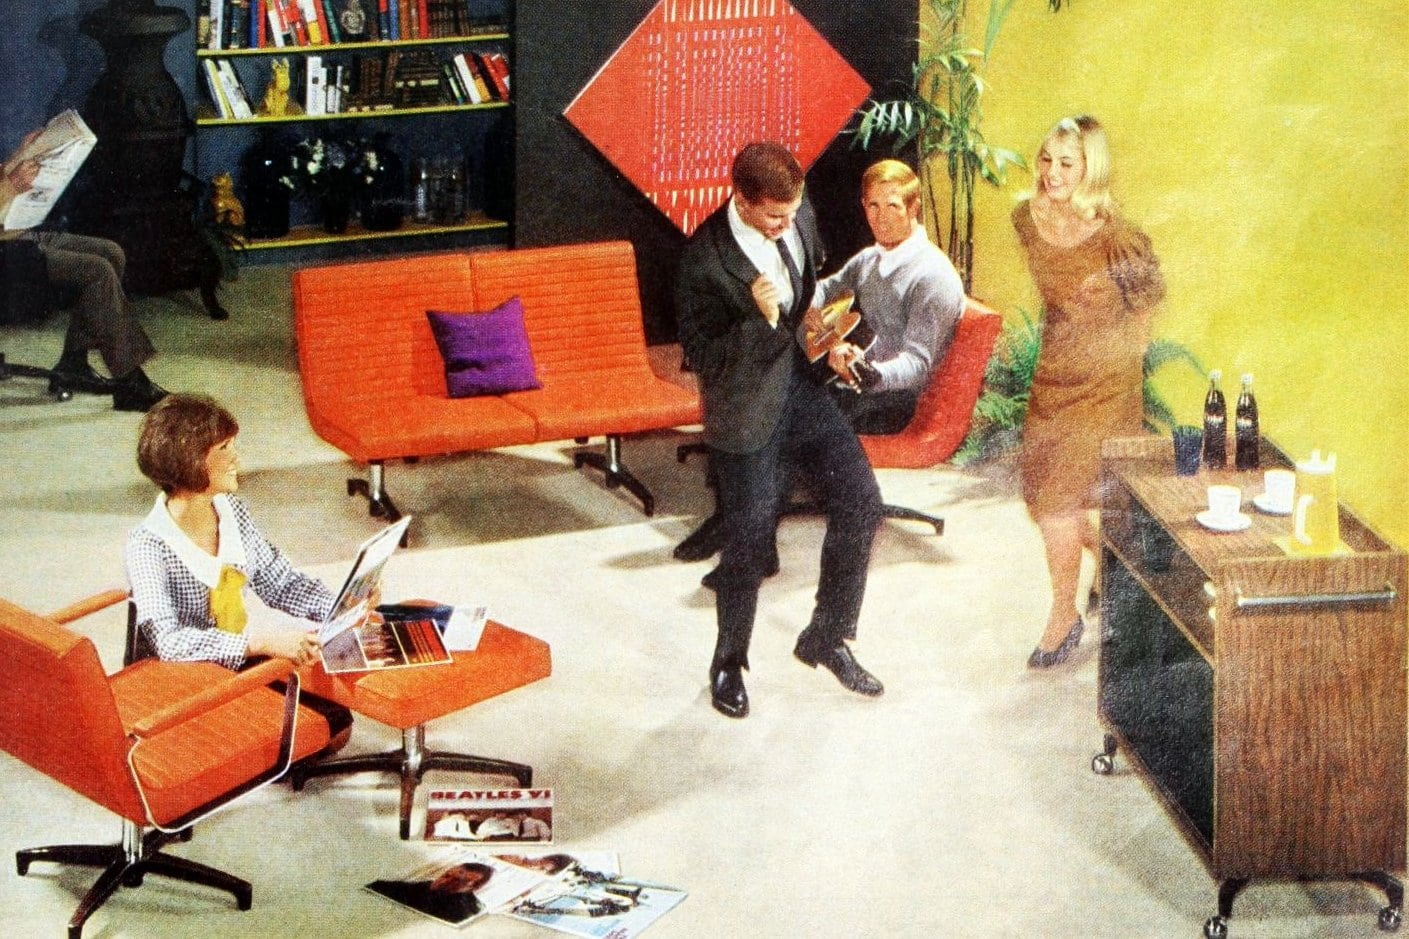 Party time in a retro home with bright colors (1966)